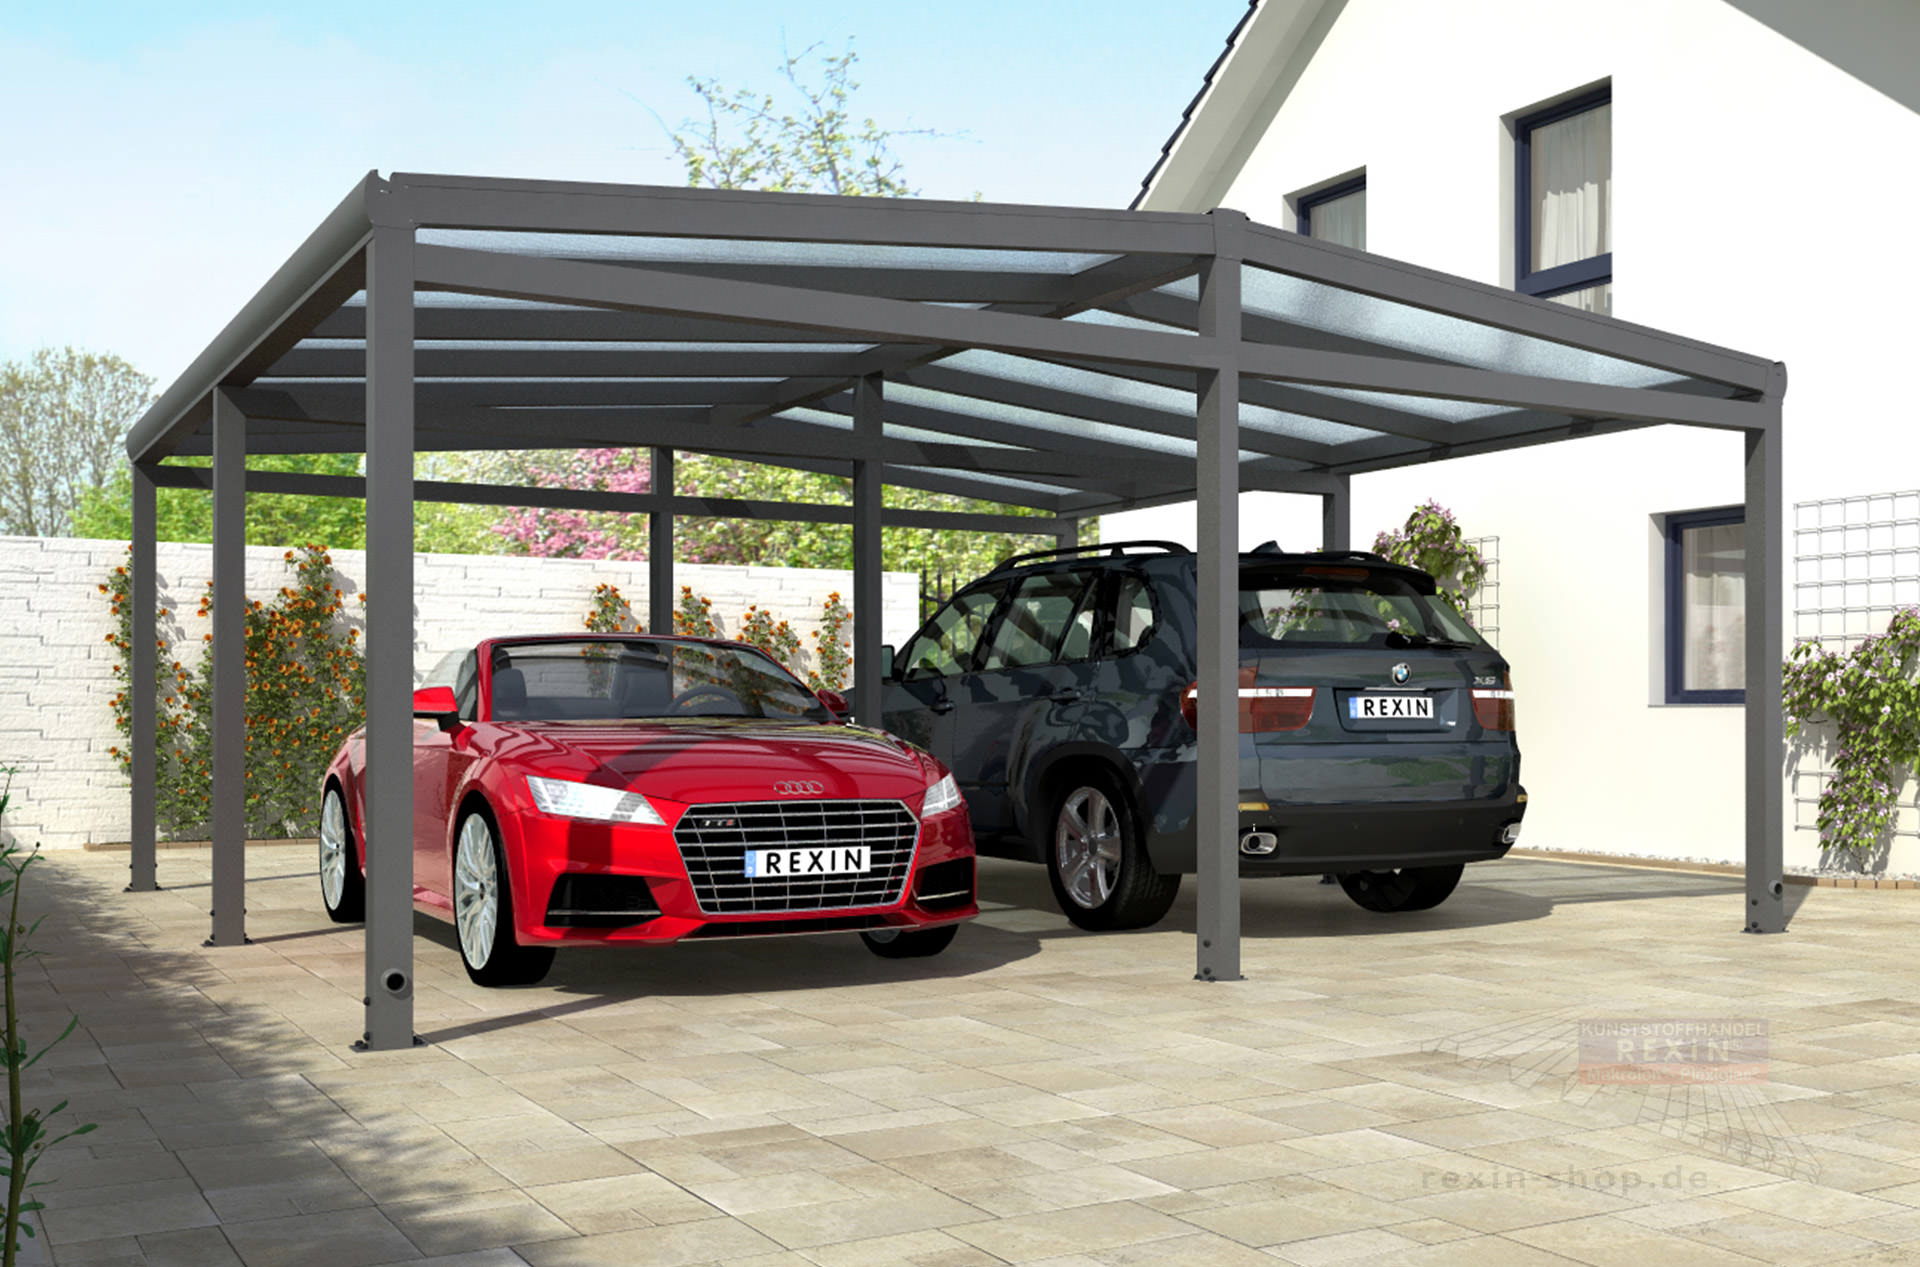 rexoport alu carport bausatz 3 13m x 6 06m alu carport bausatz 6x3m rexin shop. Black Bedroom Furniture Sets. Home Design Ideas